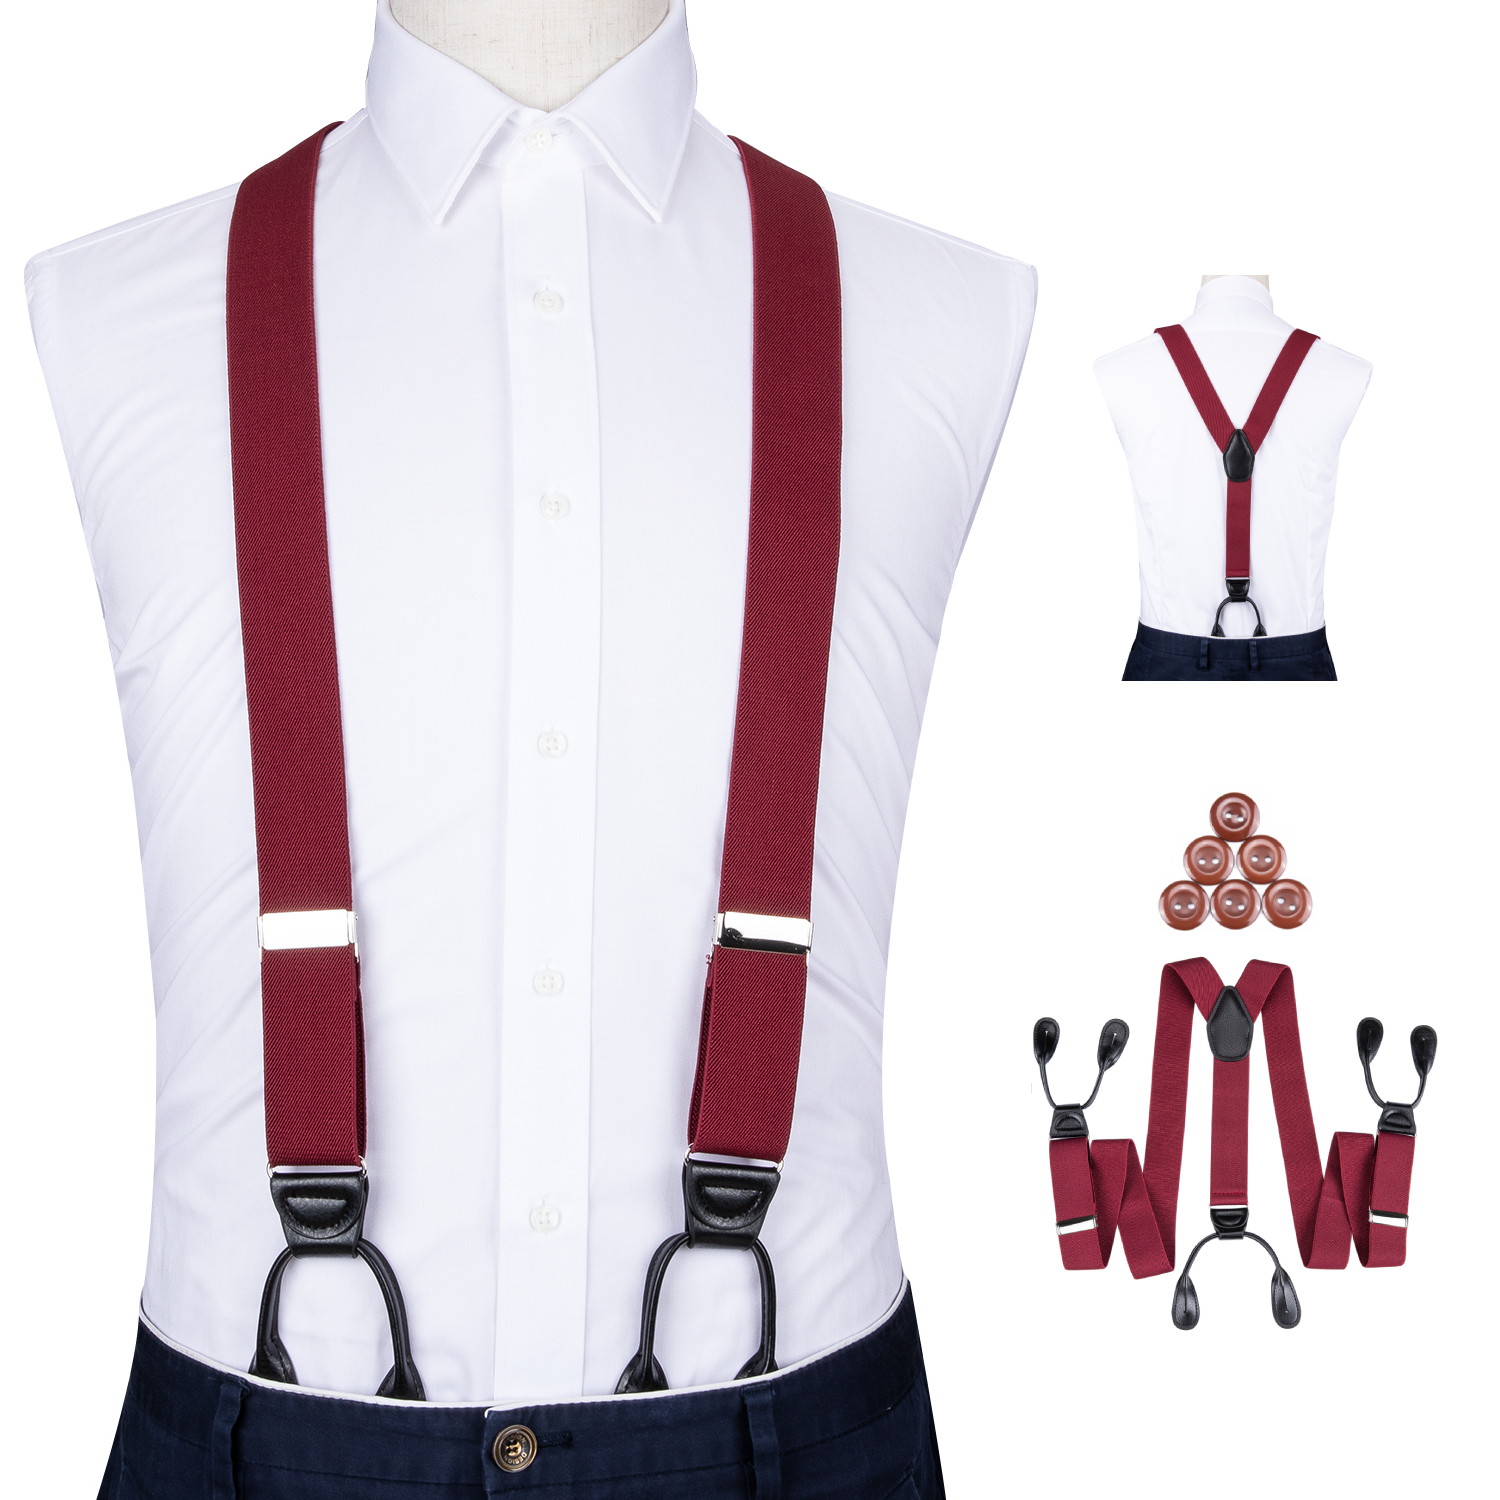 Adjustable Elasticated Adult Suspender Leather Trimmed Button End Y Back Mens Trouser Suspenders Heavy Duty Pants Braces DiBanGu